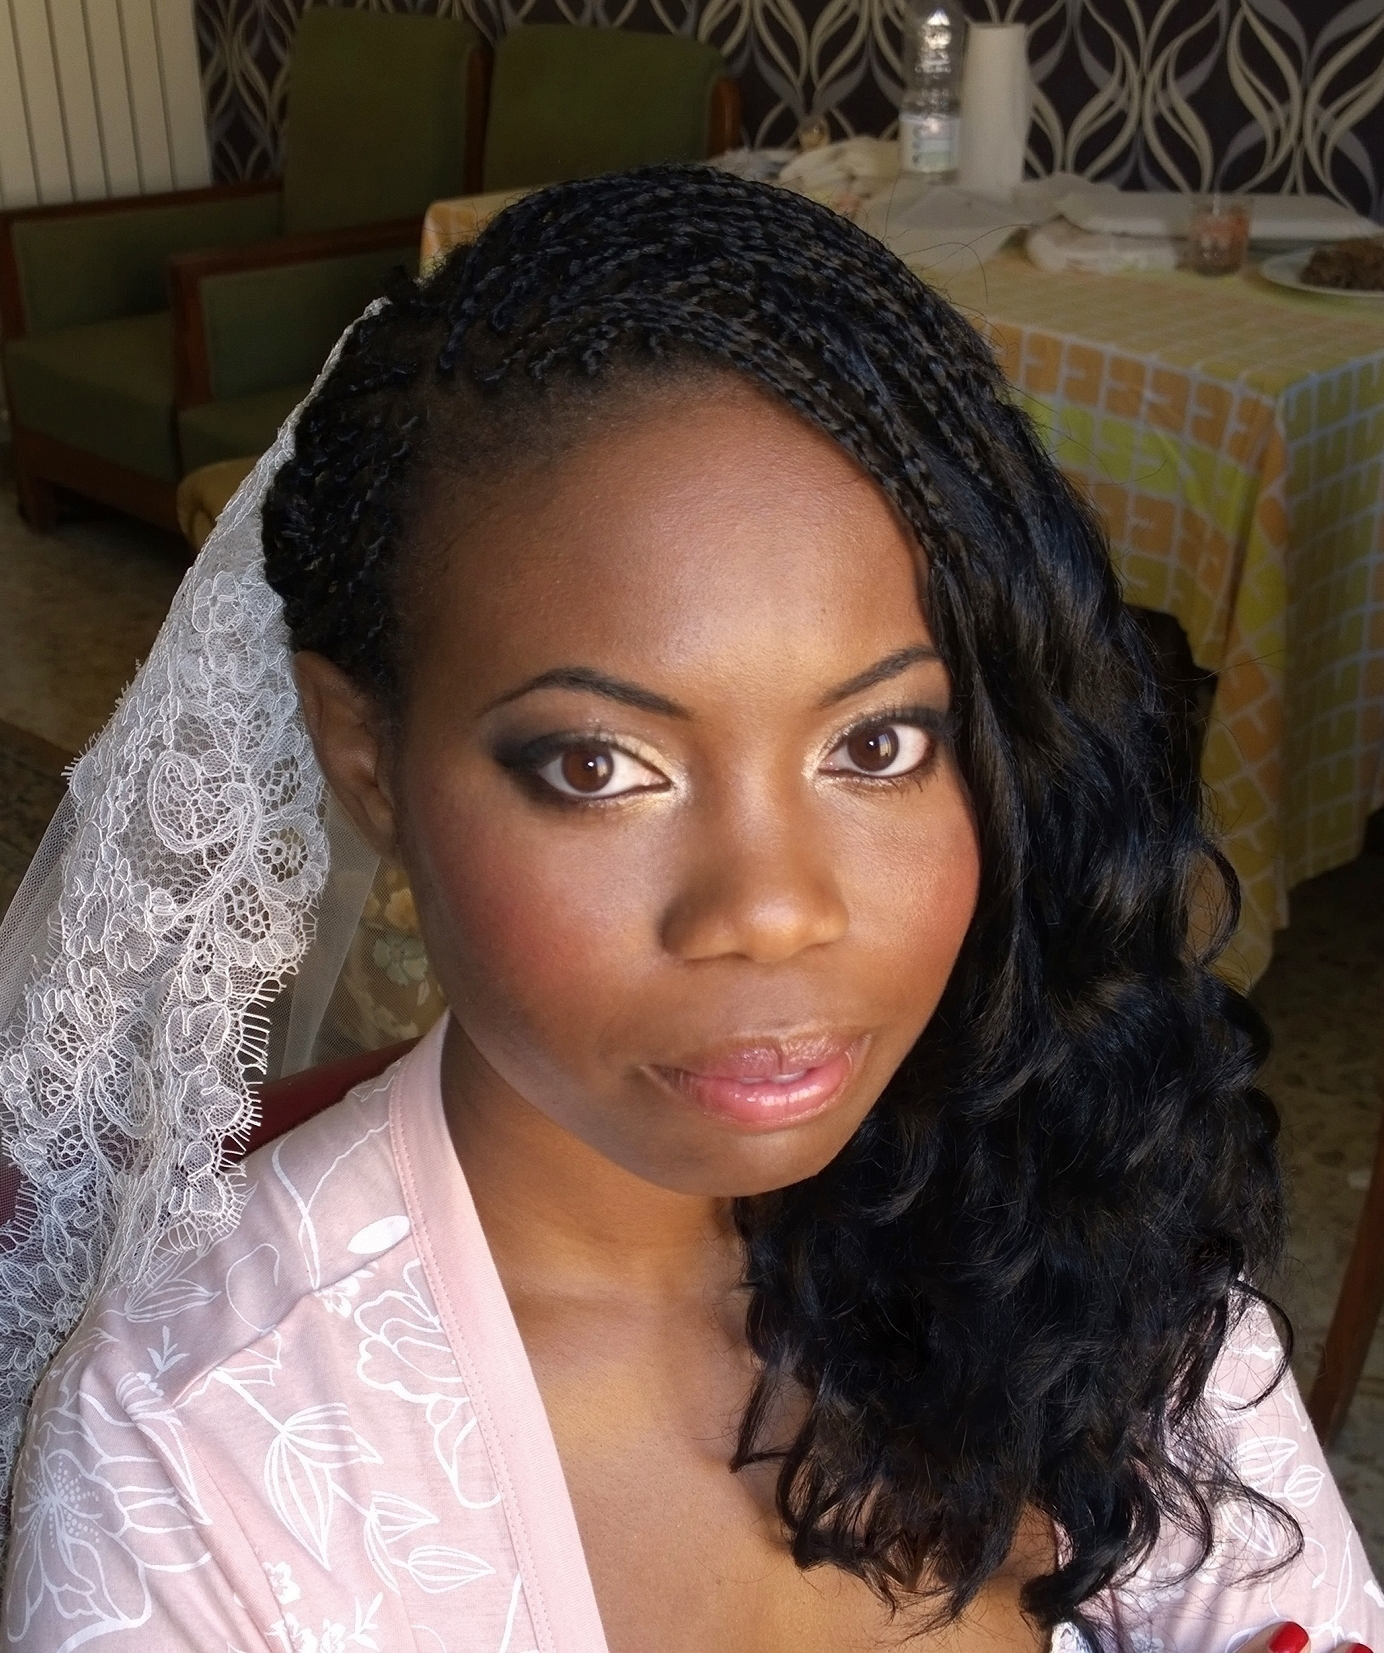 Wedding Hairstyles And Makeup: Bridal Makeup And Hairstylist In Rome, Italy And Your